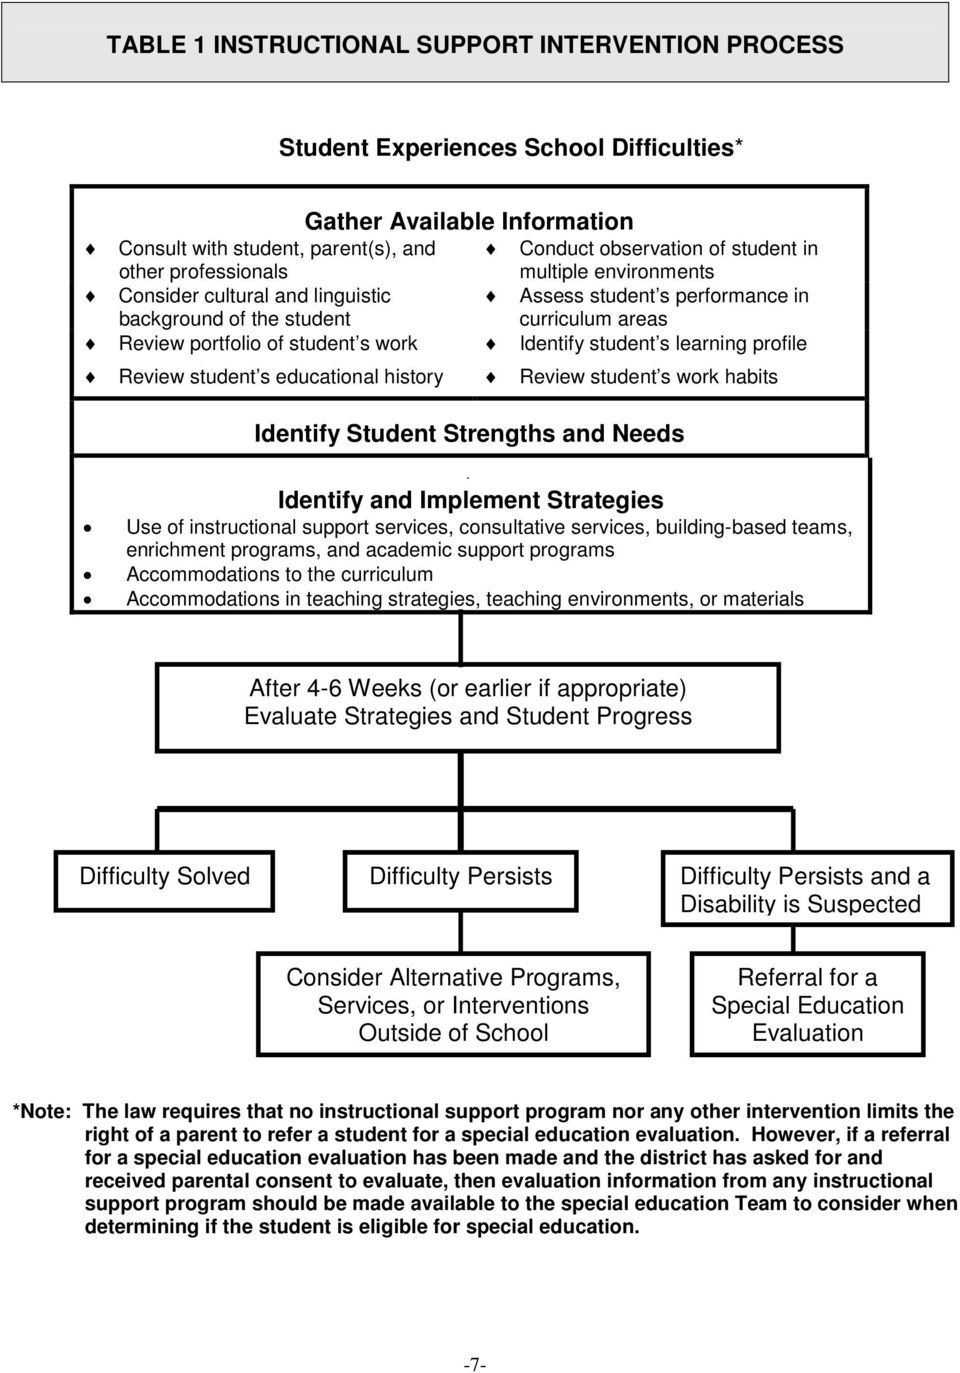 learning profile Review student s educational history Review student s work habits Identify Student Strengths and Needs Identify and Implement Strategies Use of instructional support services,